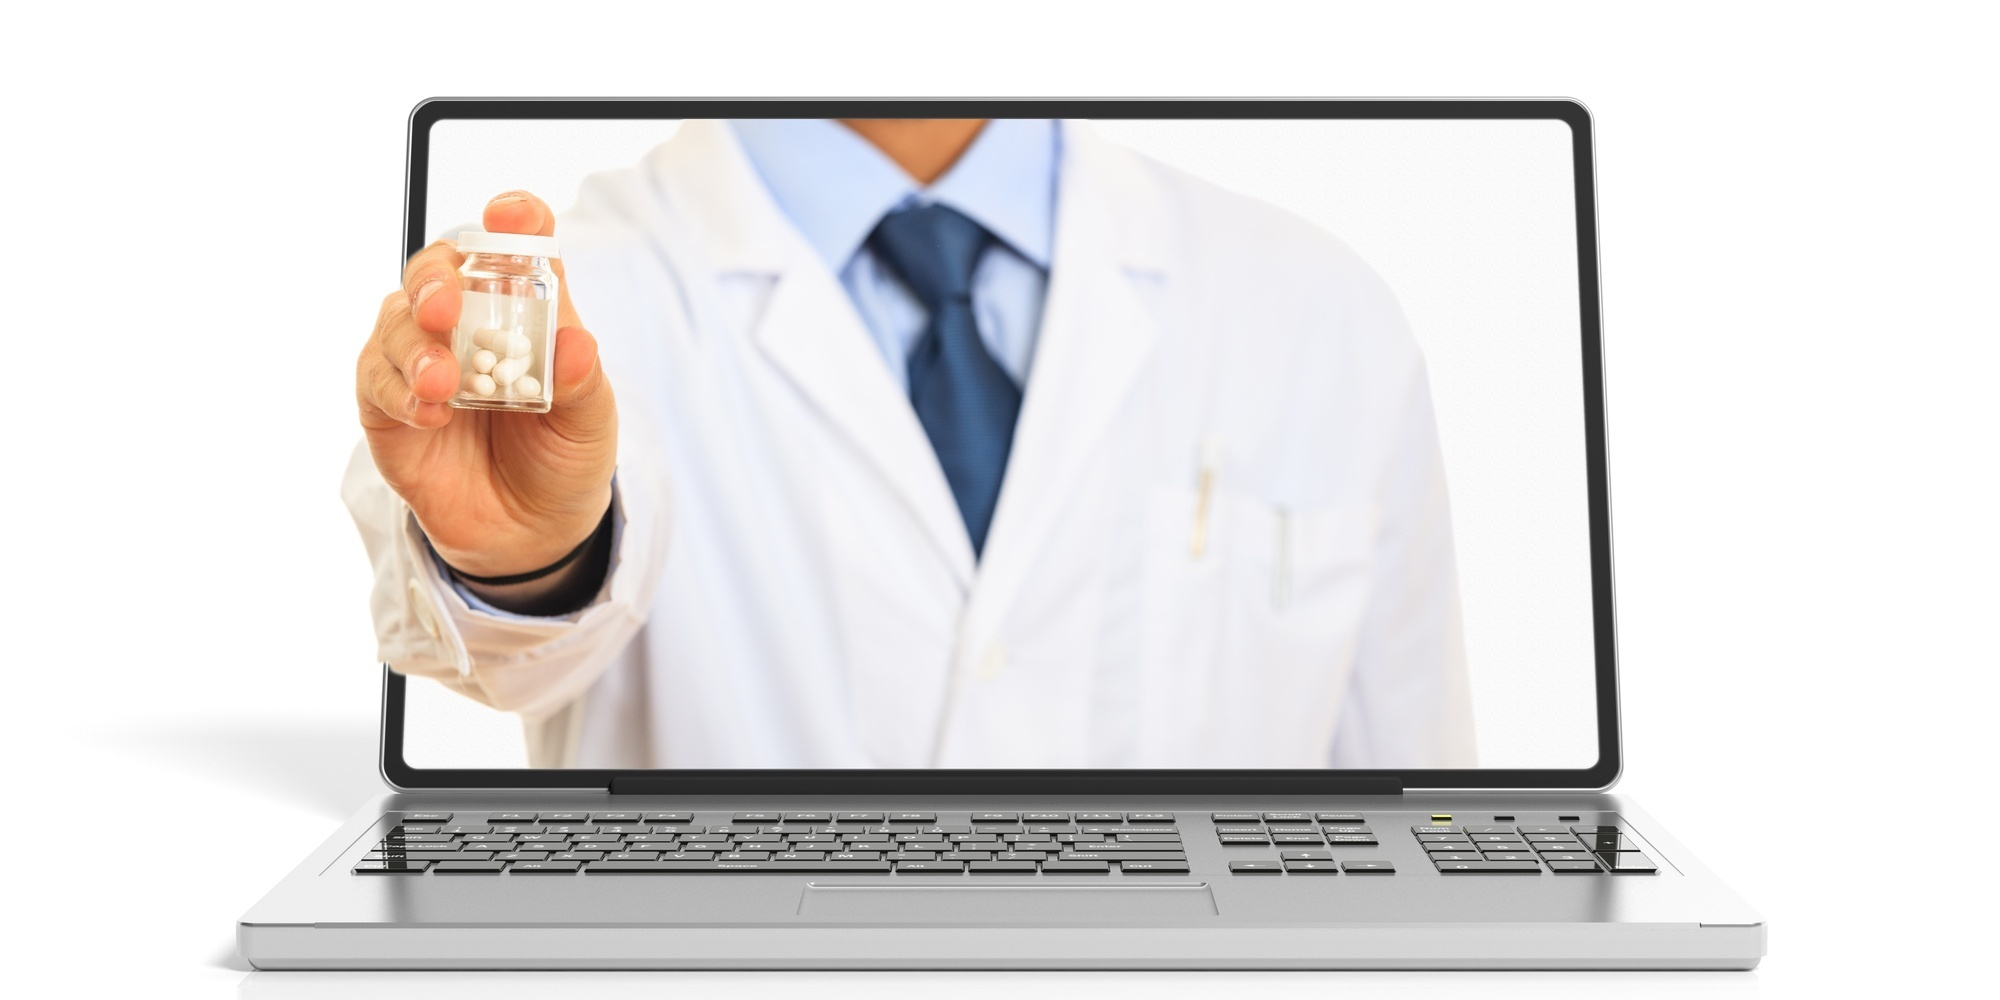 What to Look for When Ordering Medication Online